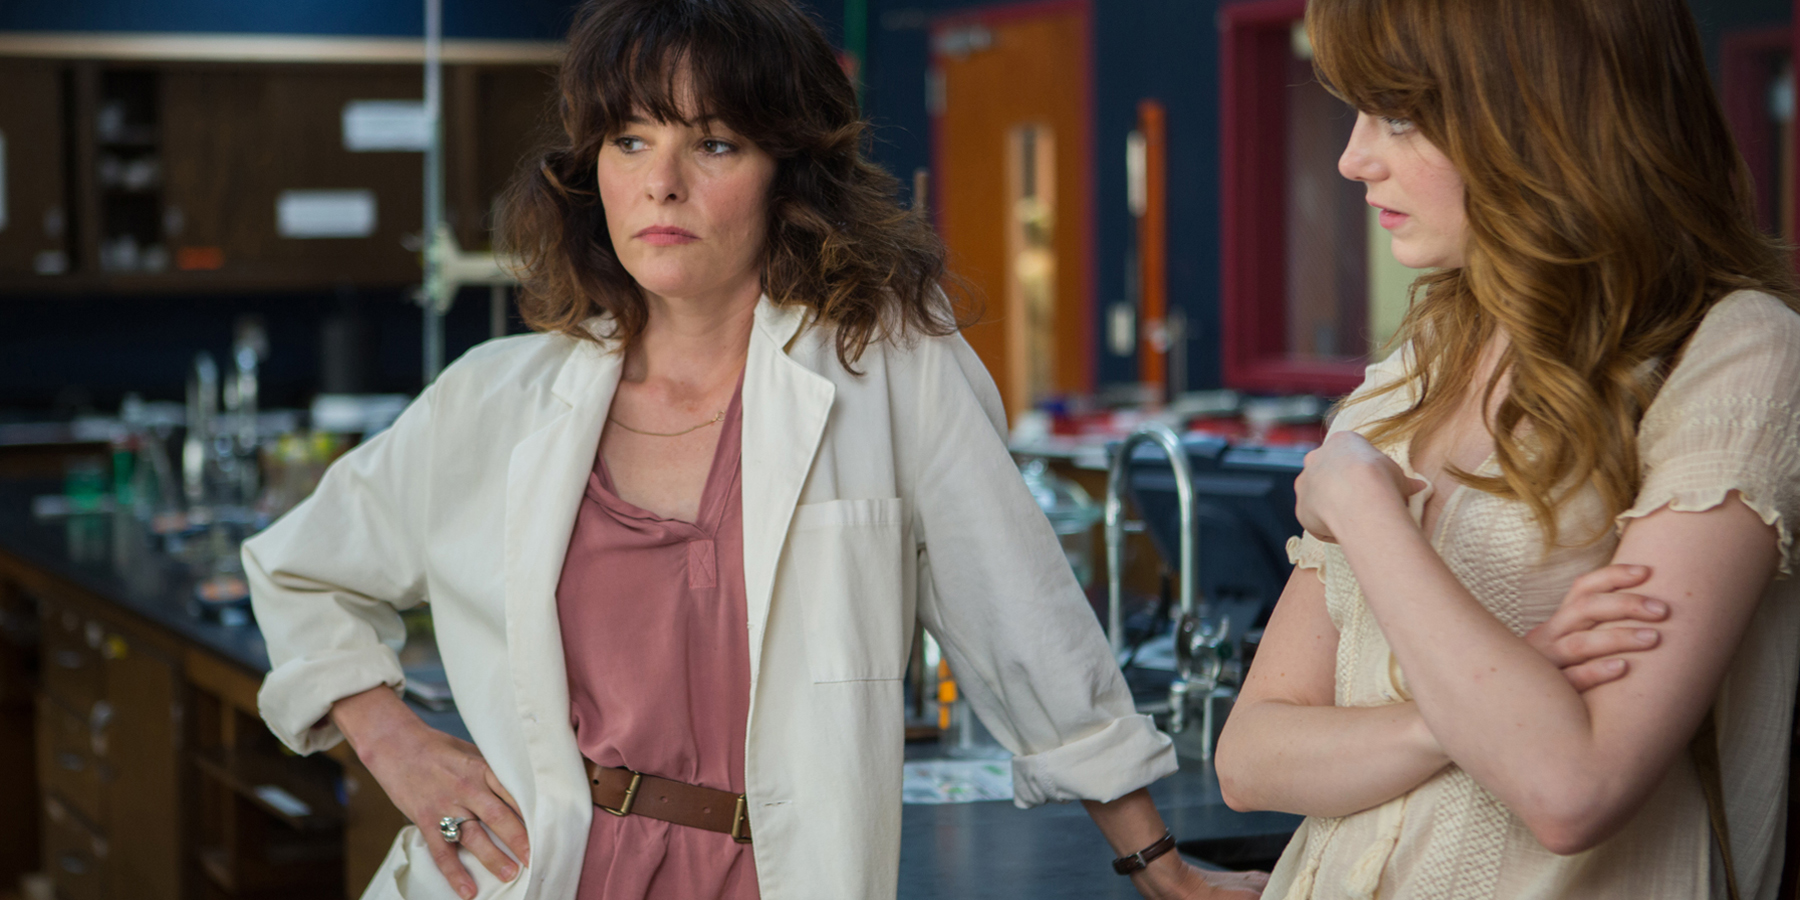 Netflix S Lost In Space Series Casts Parker Posey As Dr Smith